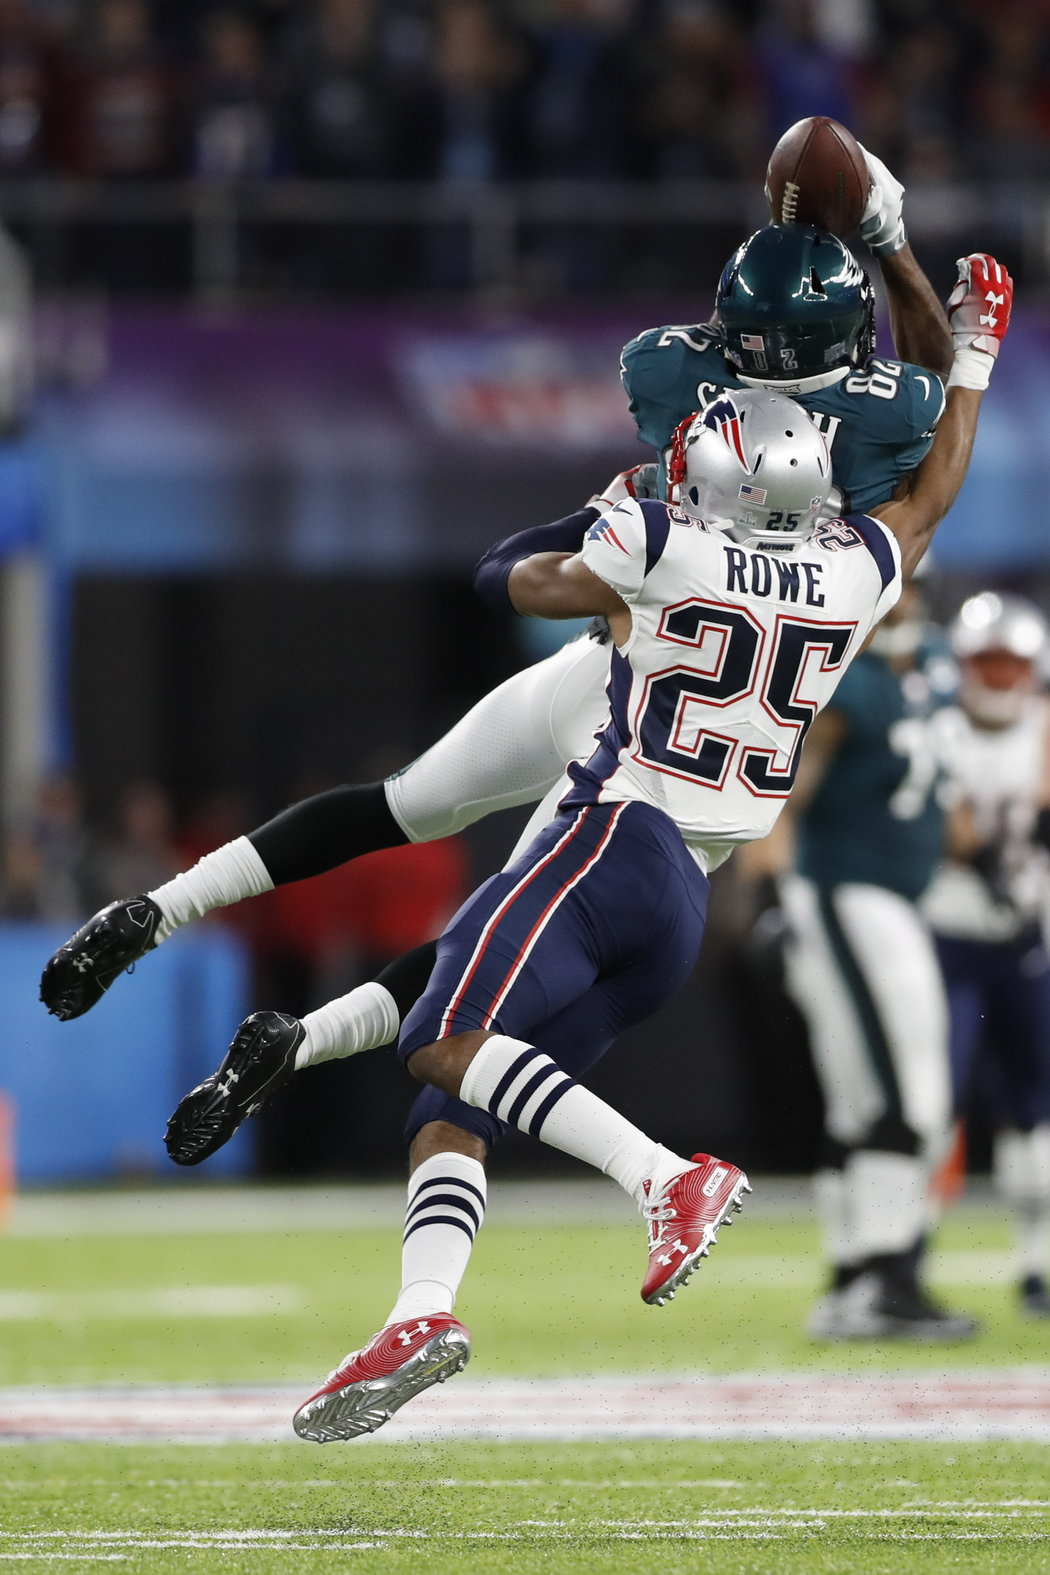 Super Bowl Eagles Lead Patriots After First Drive